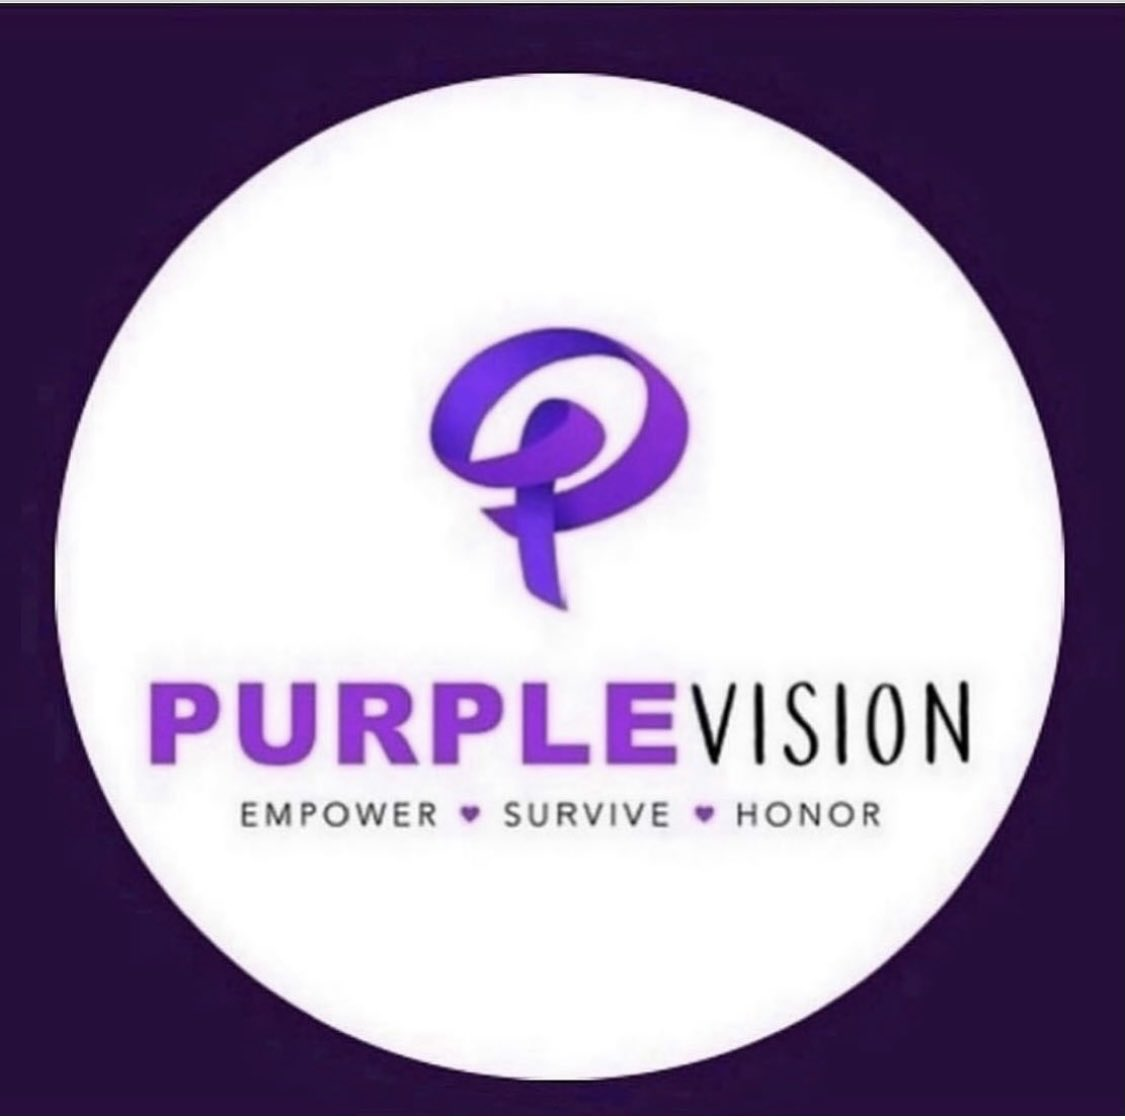 #GratitudeSunday #purplevisionorg #empower #survive #honor #stopdomesticviolence💜 https://t.co/dNc3A1by0J